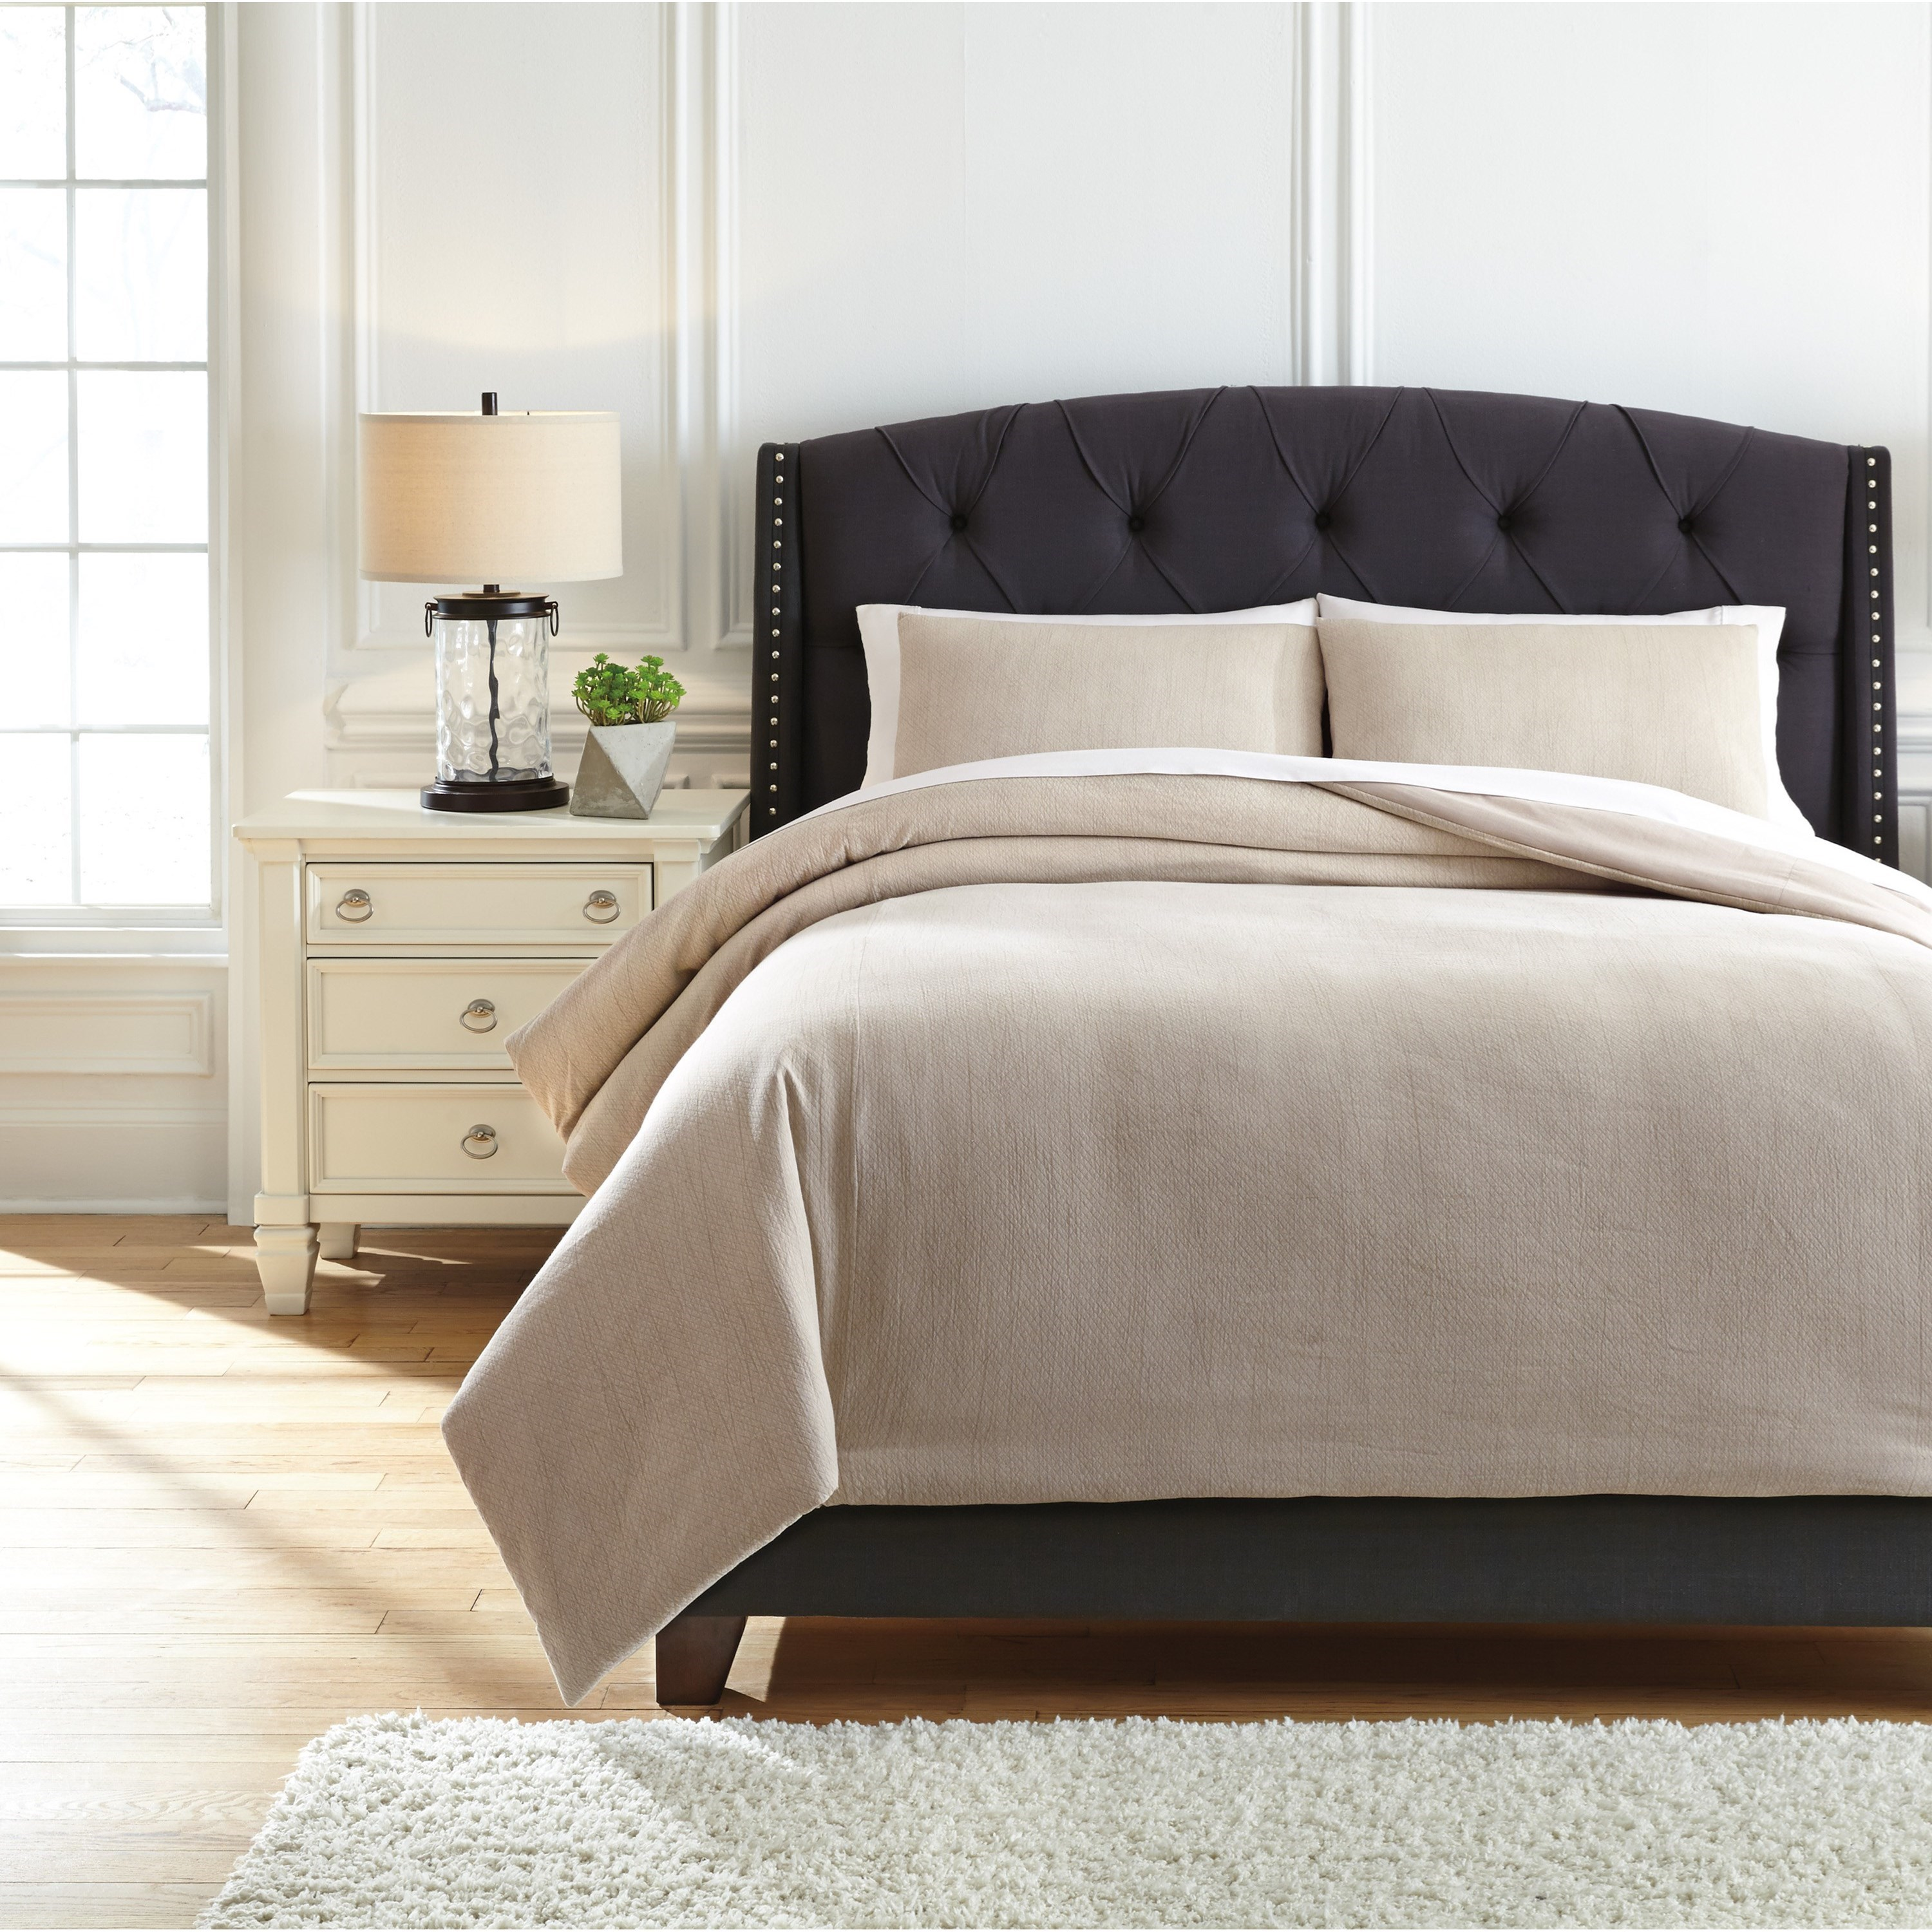 Bedding Sets Queen Mayda Beige Comforter Set by Signature Design by Ashley at Northeast Factory Direct